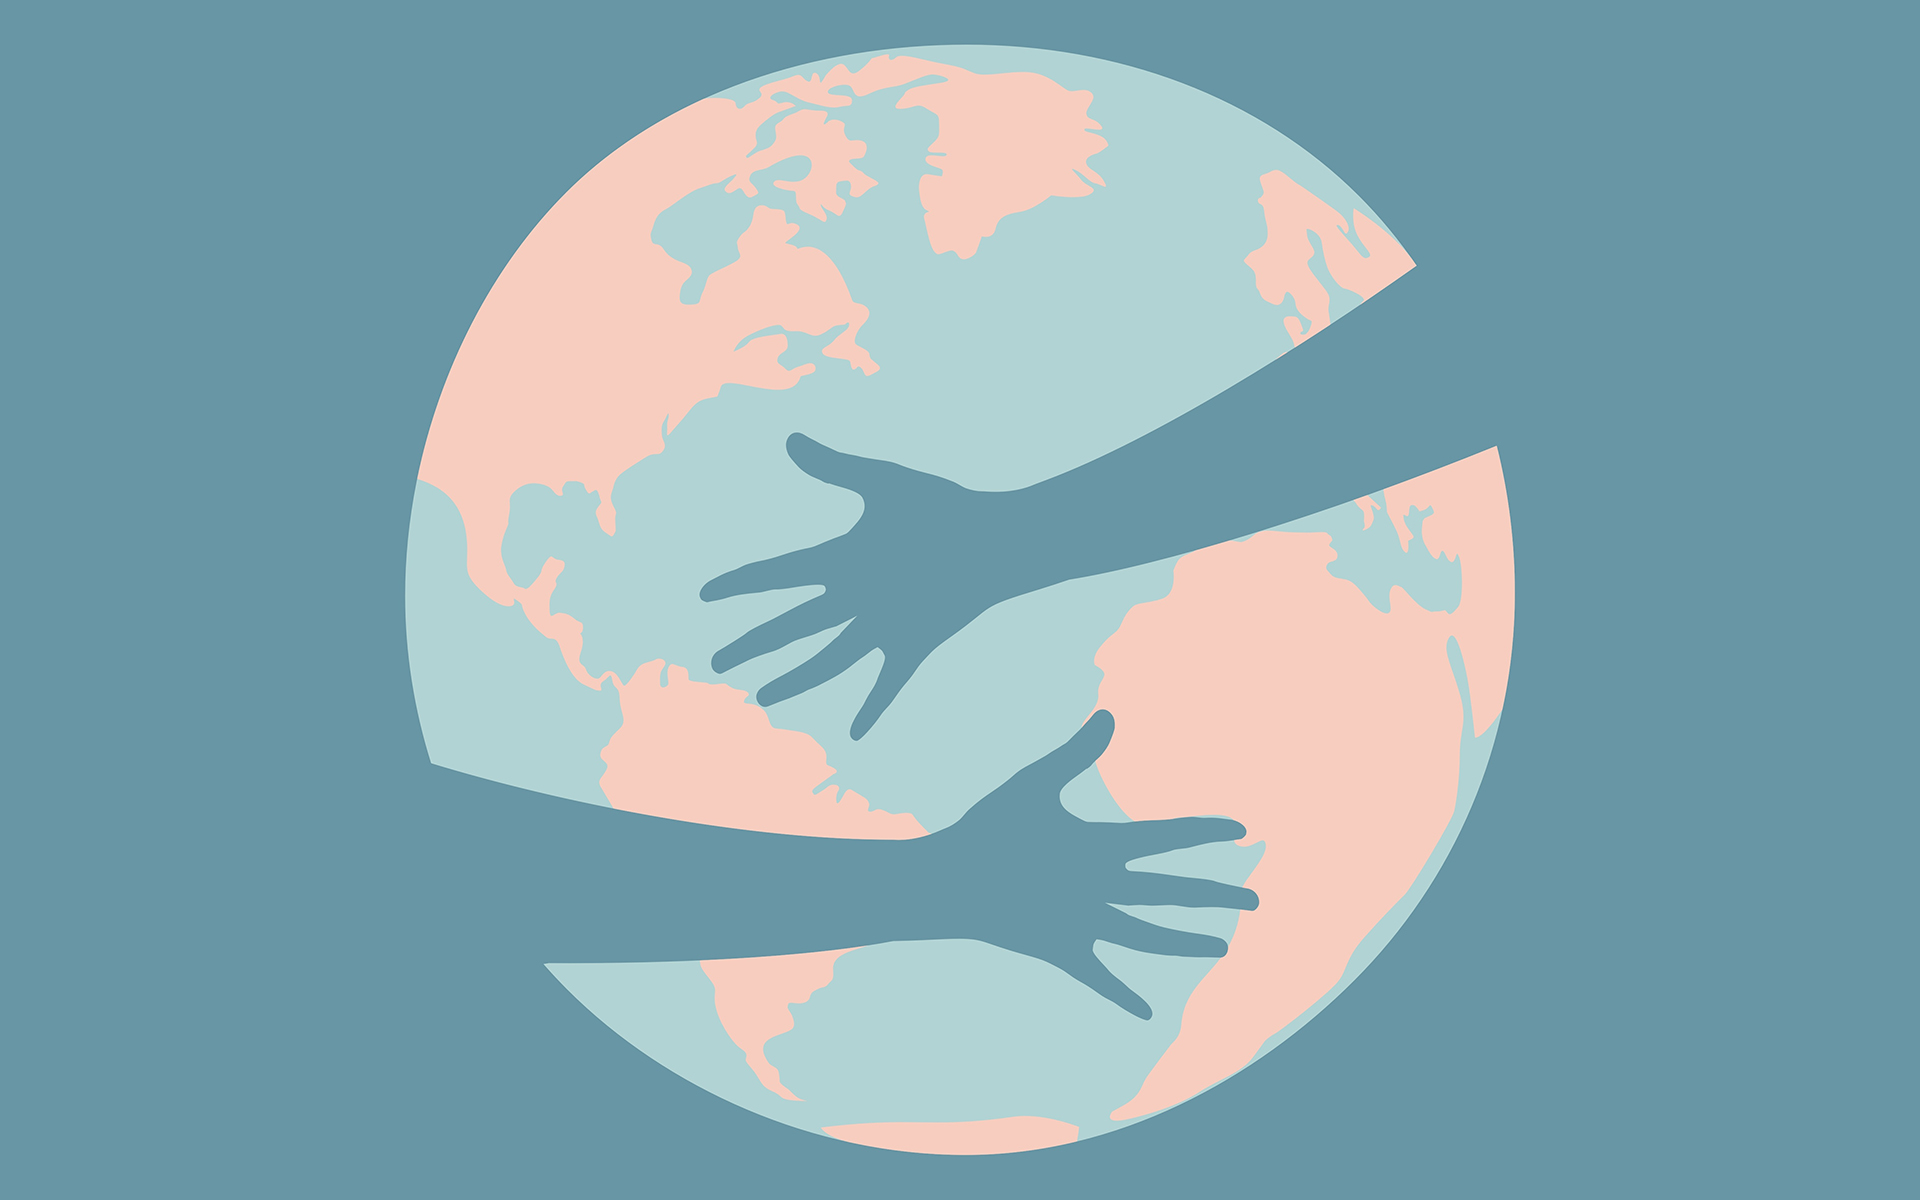 How Your Mindfulness Practice Can Help Support the World Right Now - Hands hug the planet illustration